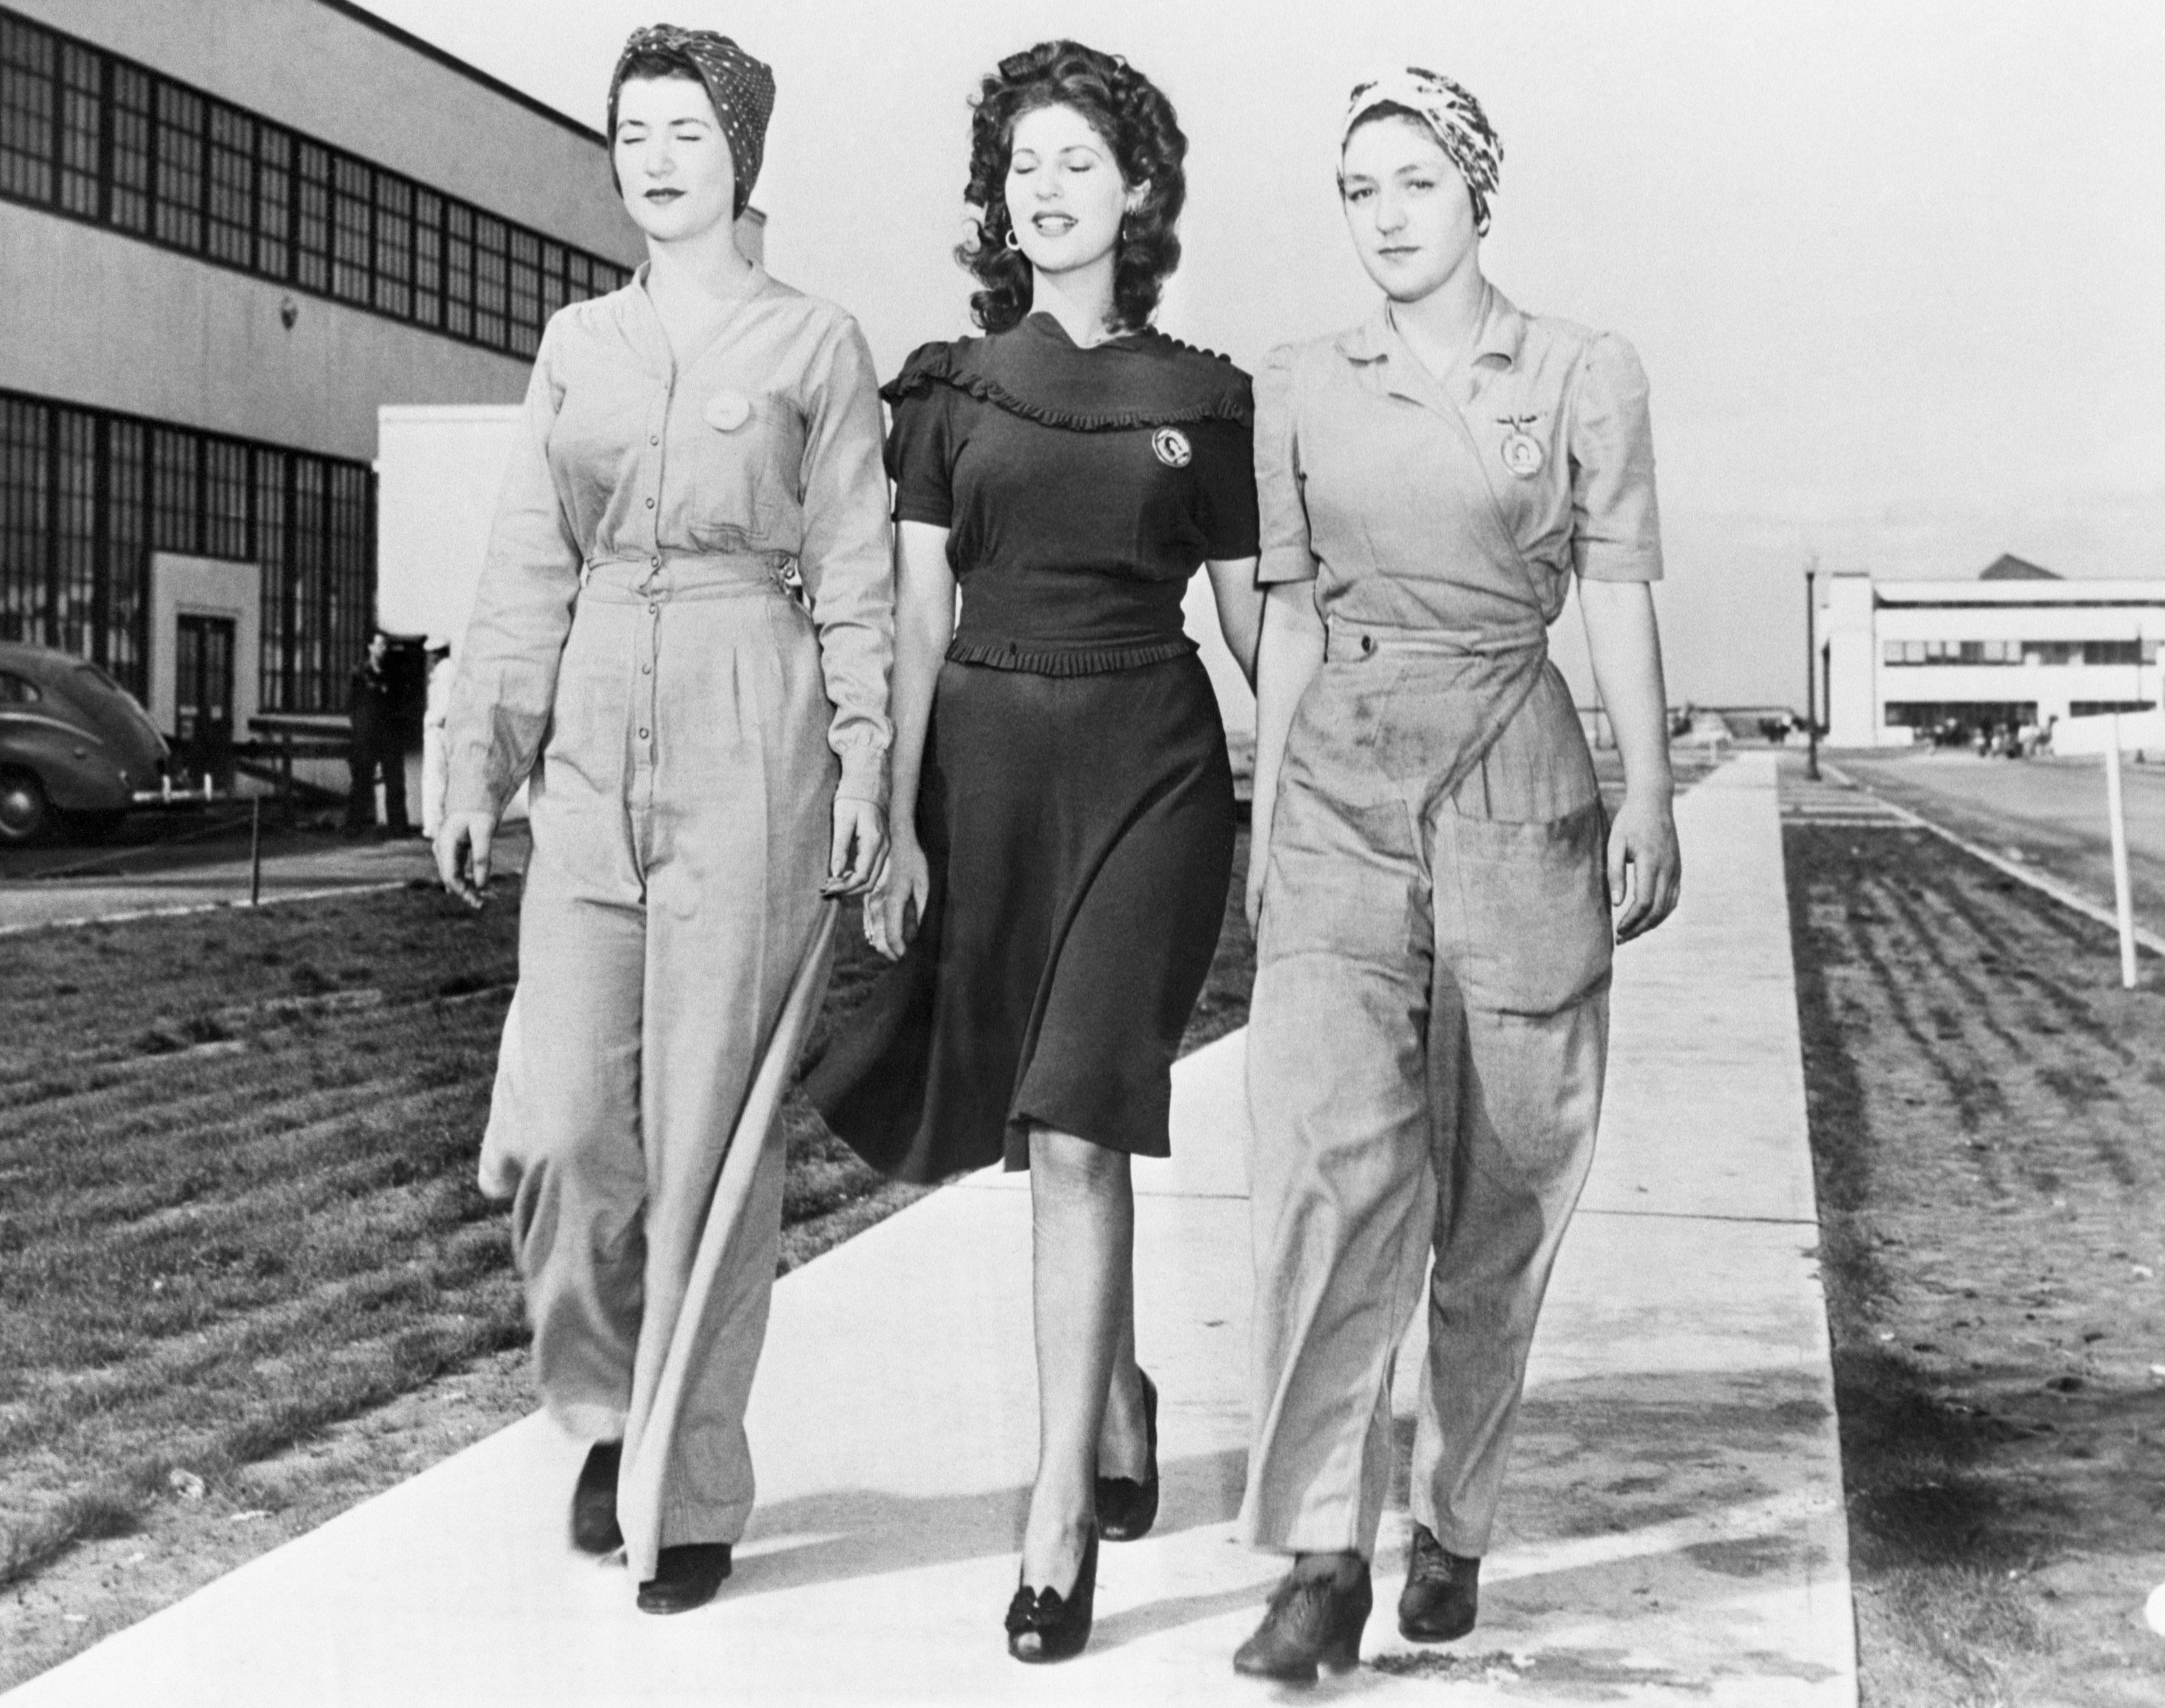 women's fashion during wwii